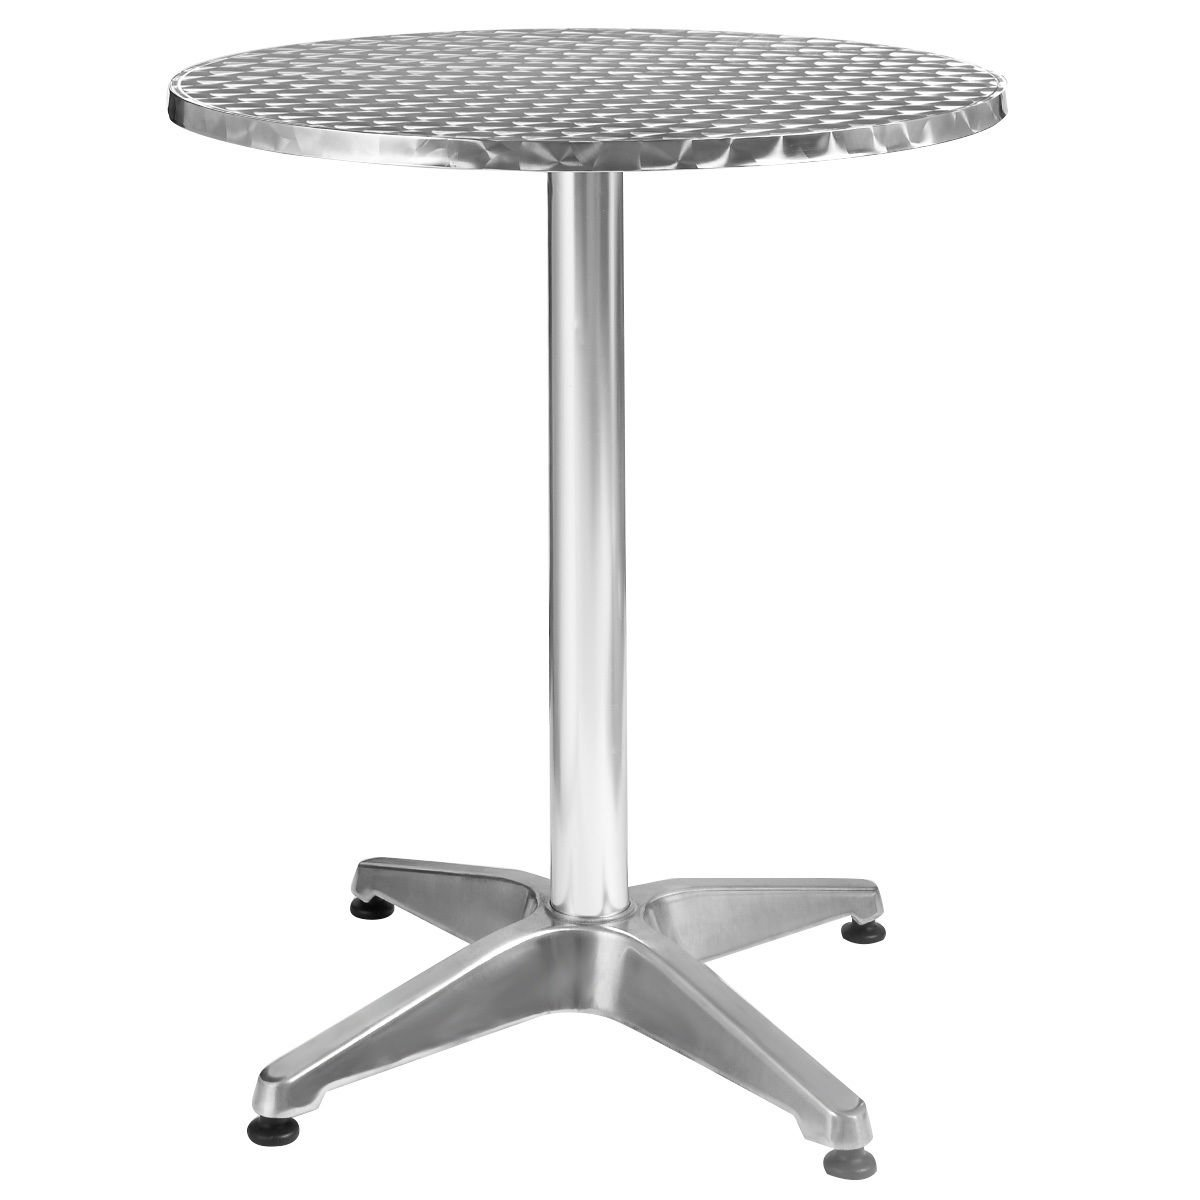 23'' Adjustable Height Round Bar Table Restaurant Stainless Steel Covering